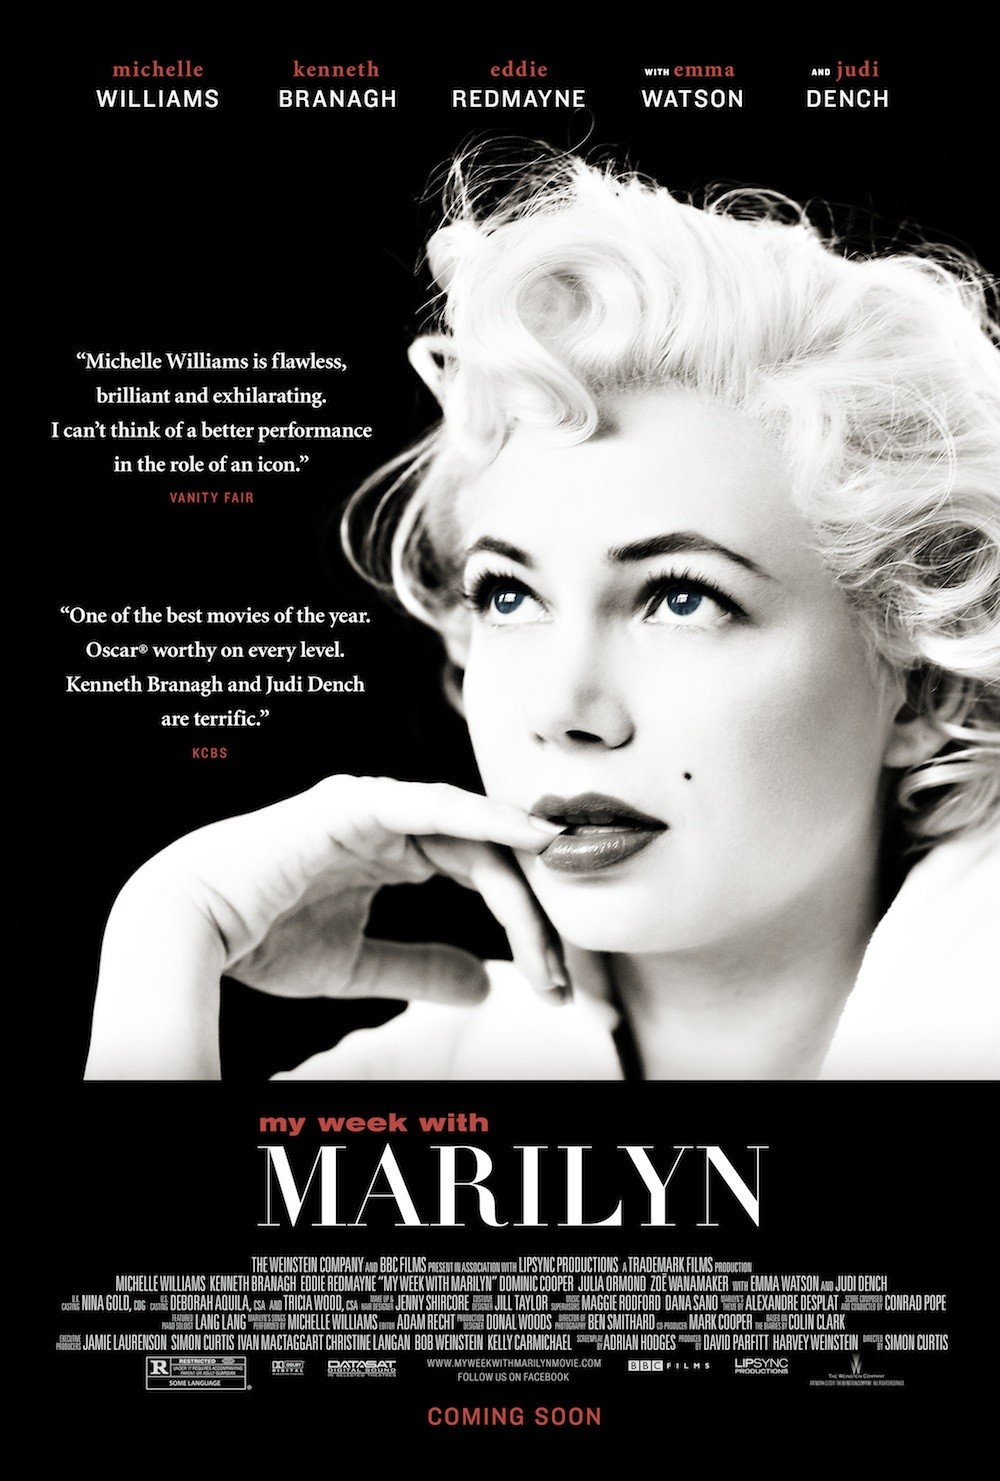 One week with Marilyn